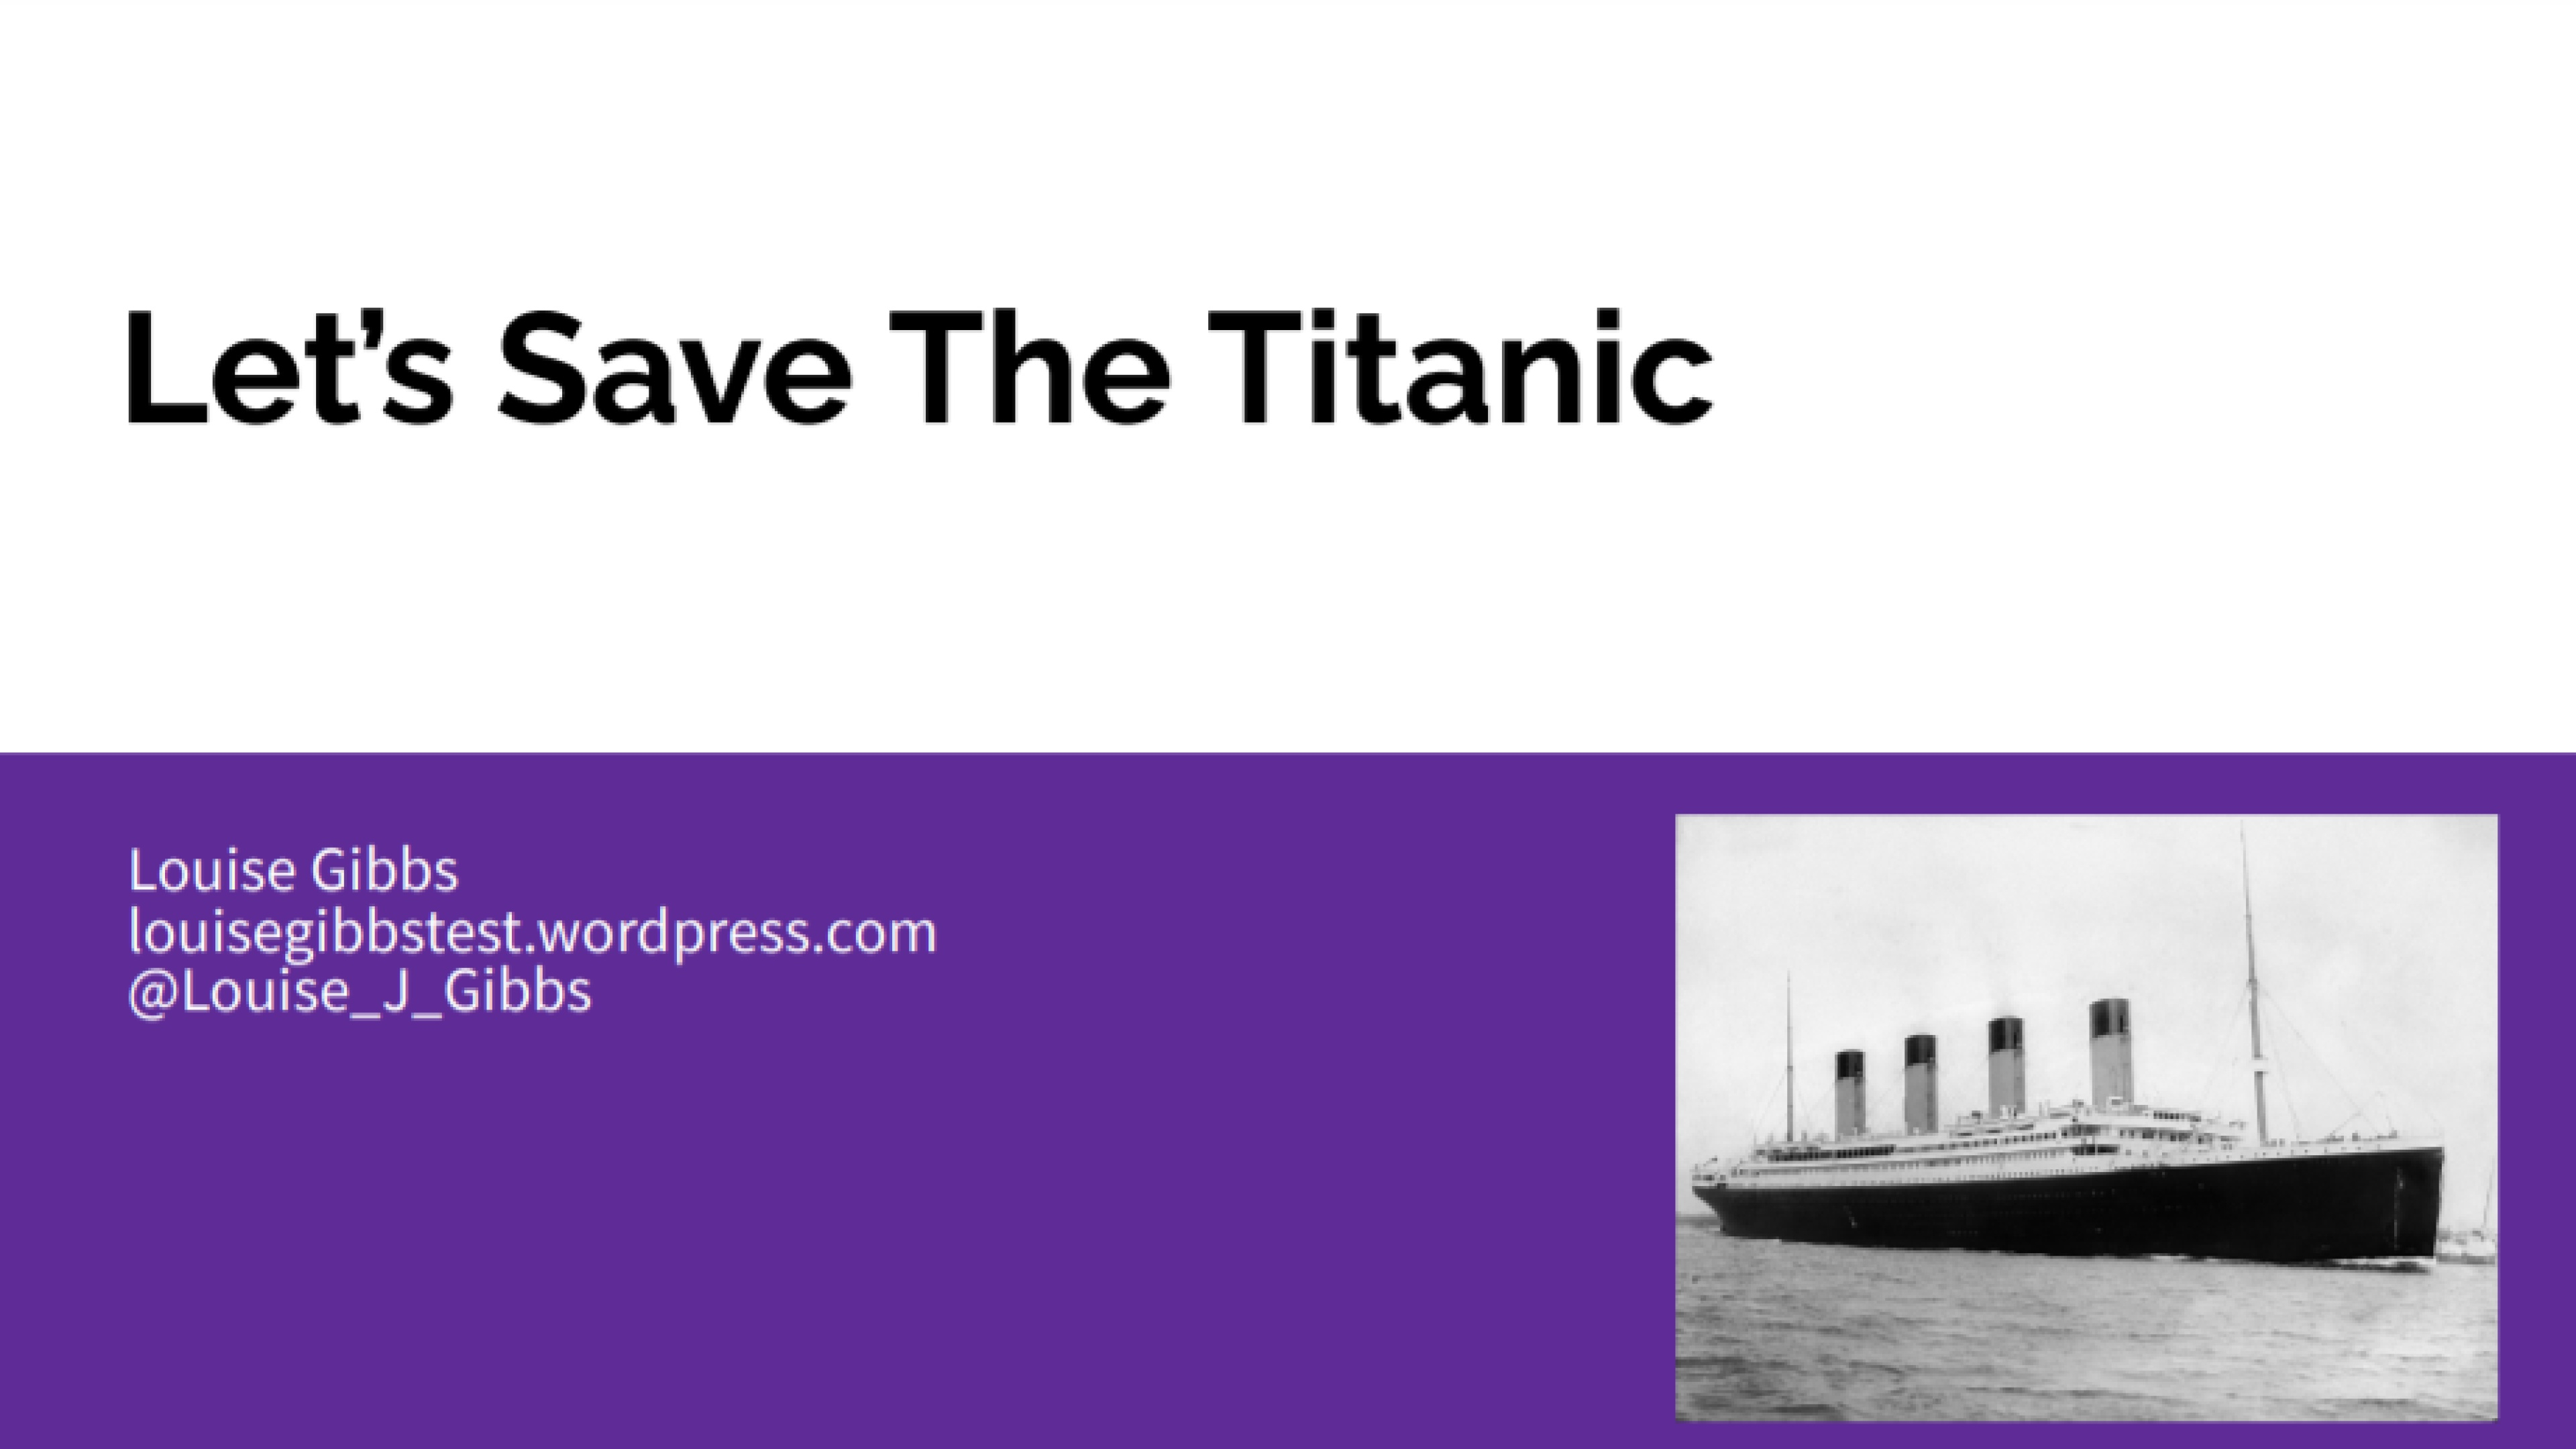 Let's Save The Titanic - Louise Gibbs